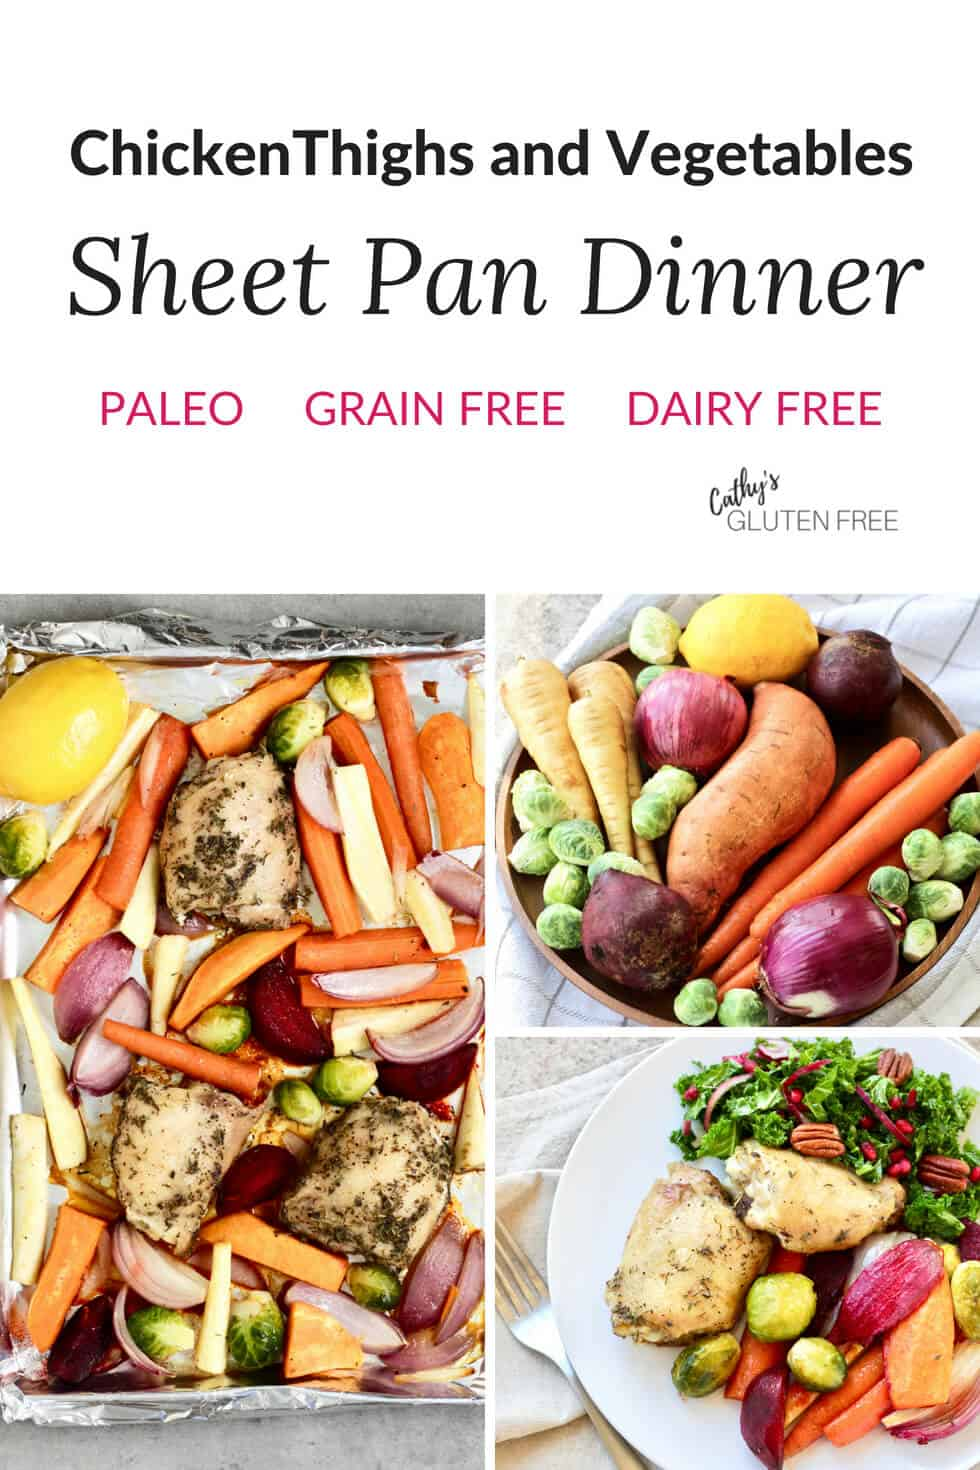 Sheet Pan Dinner with Chicken and Vegetables is a wholesome dinner on the table in under an hour! #glutenfree #sheetpan #dairyfree #healthy #chicken